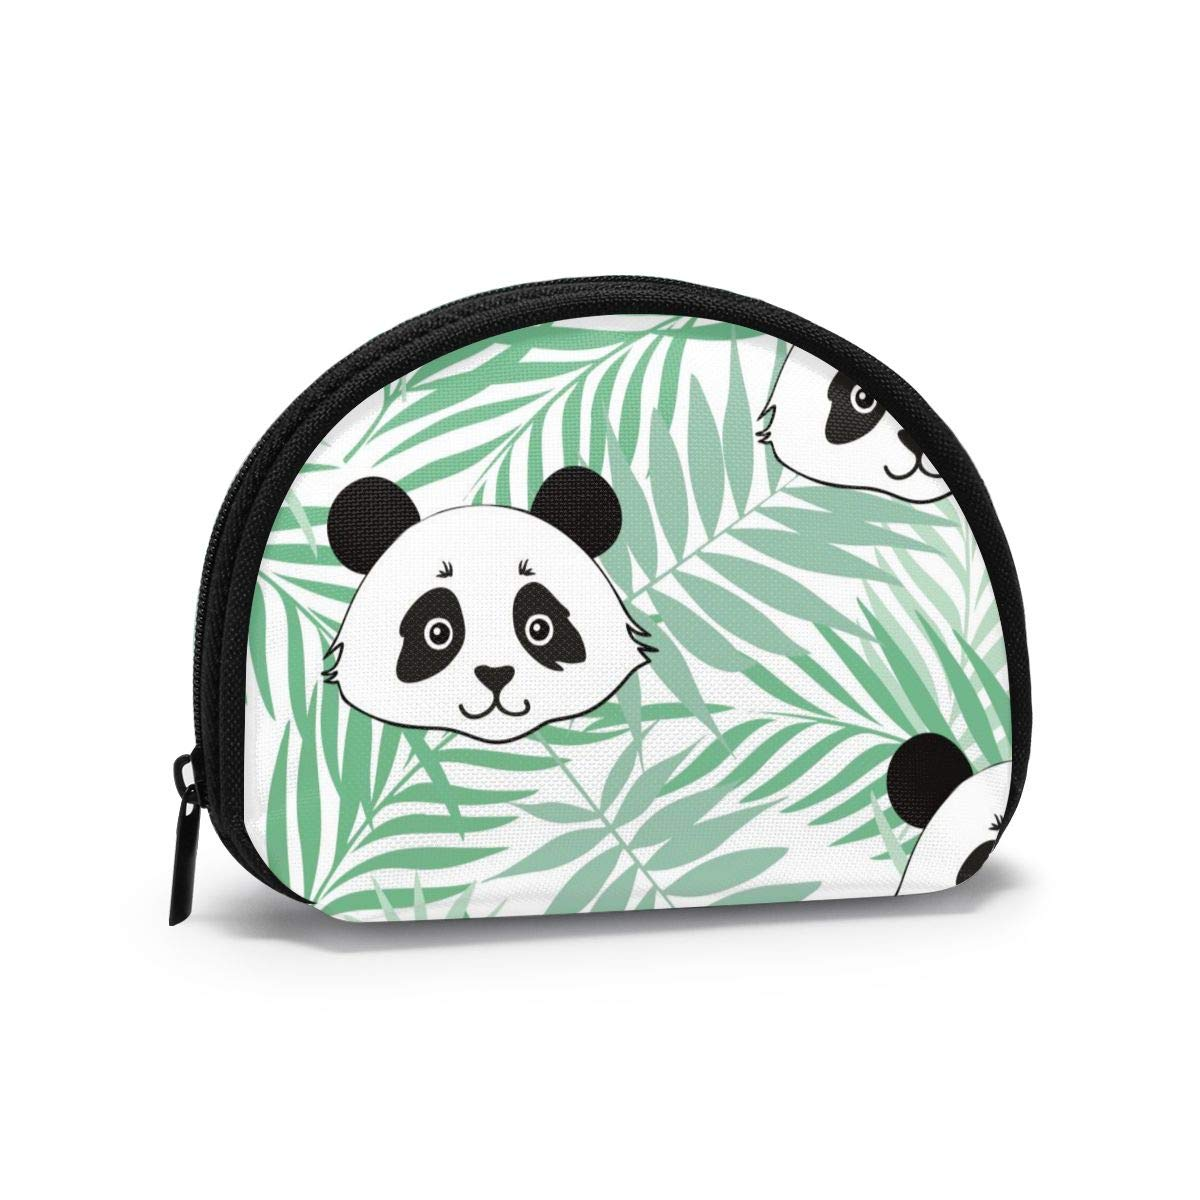 Cute Panda Tropical Leaves Semicircular Mini Wallet Coin Purse Card Holder Bag